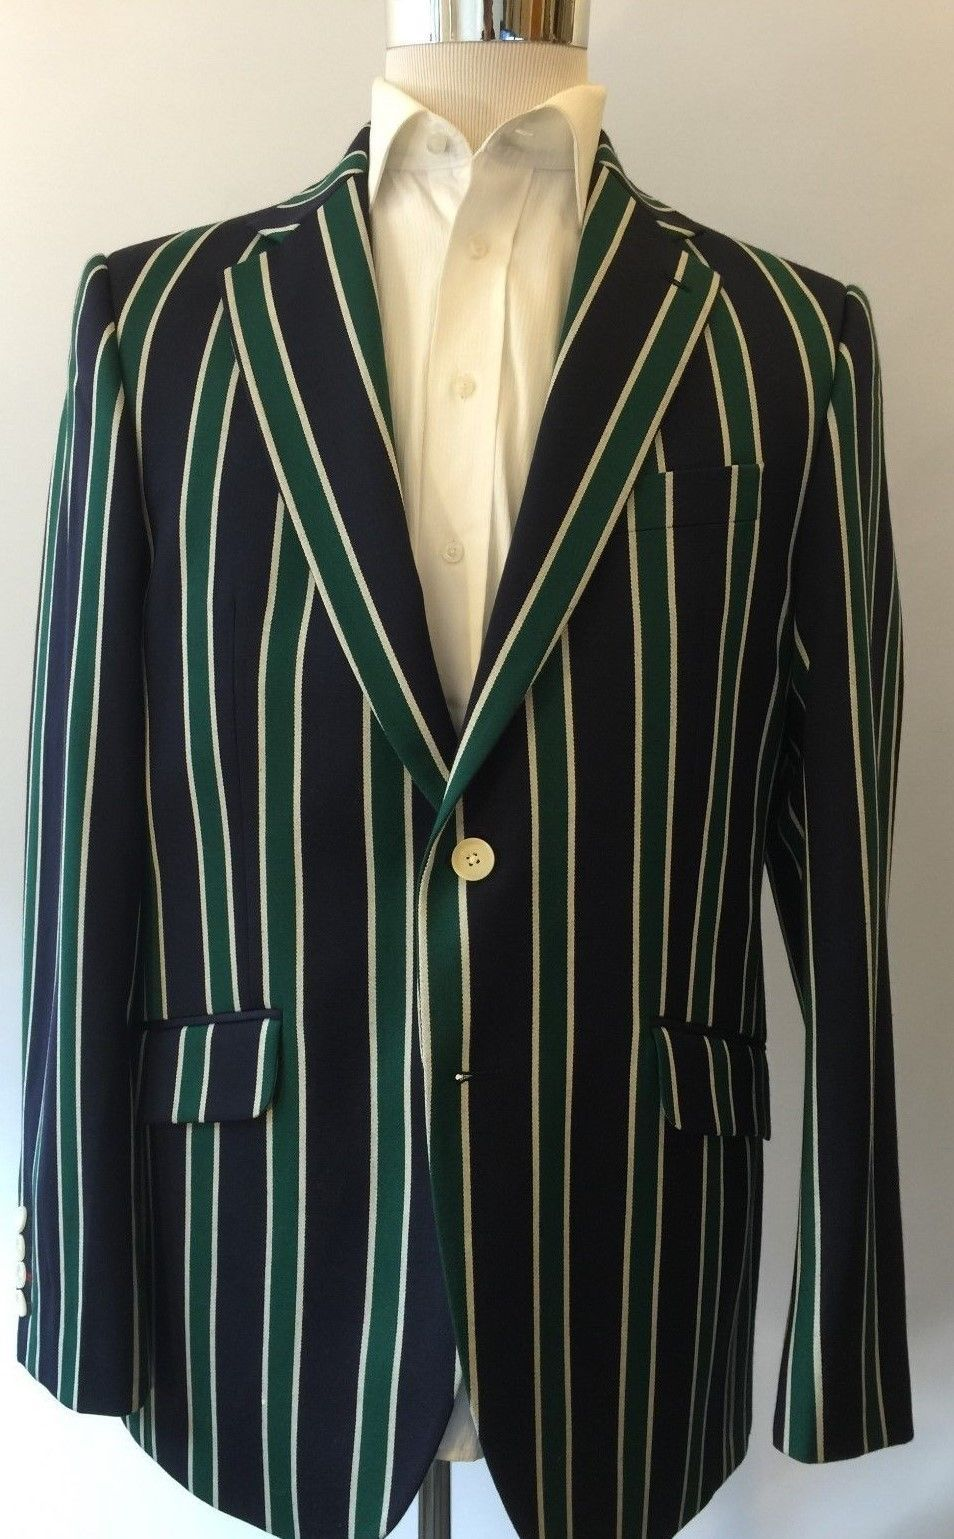 Details about SALE! CHARLES TYRWHITT NEW $795 Striped Blue Green ...